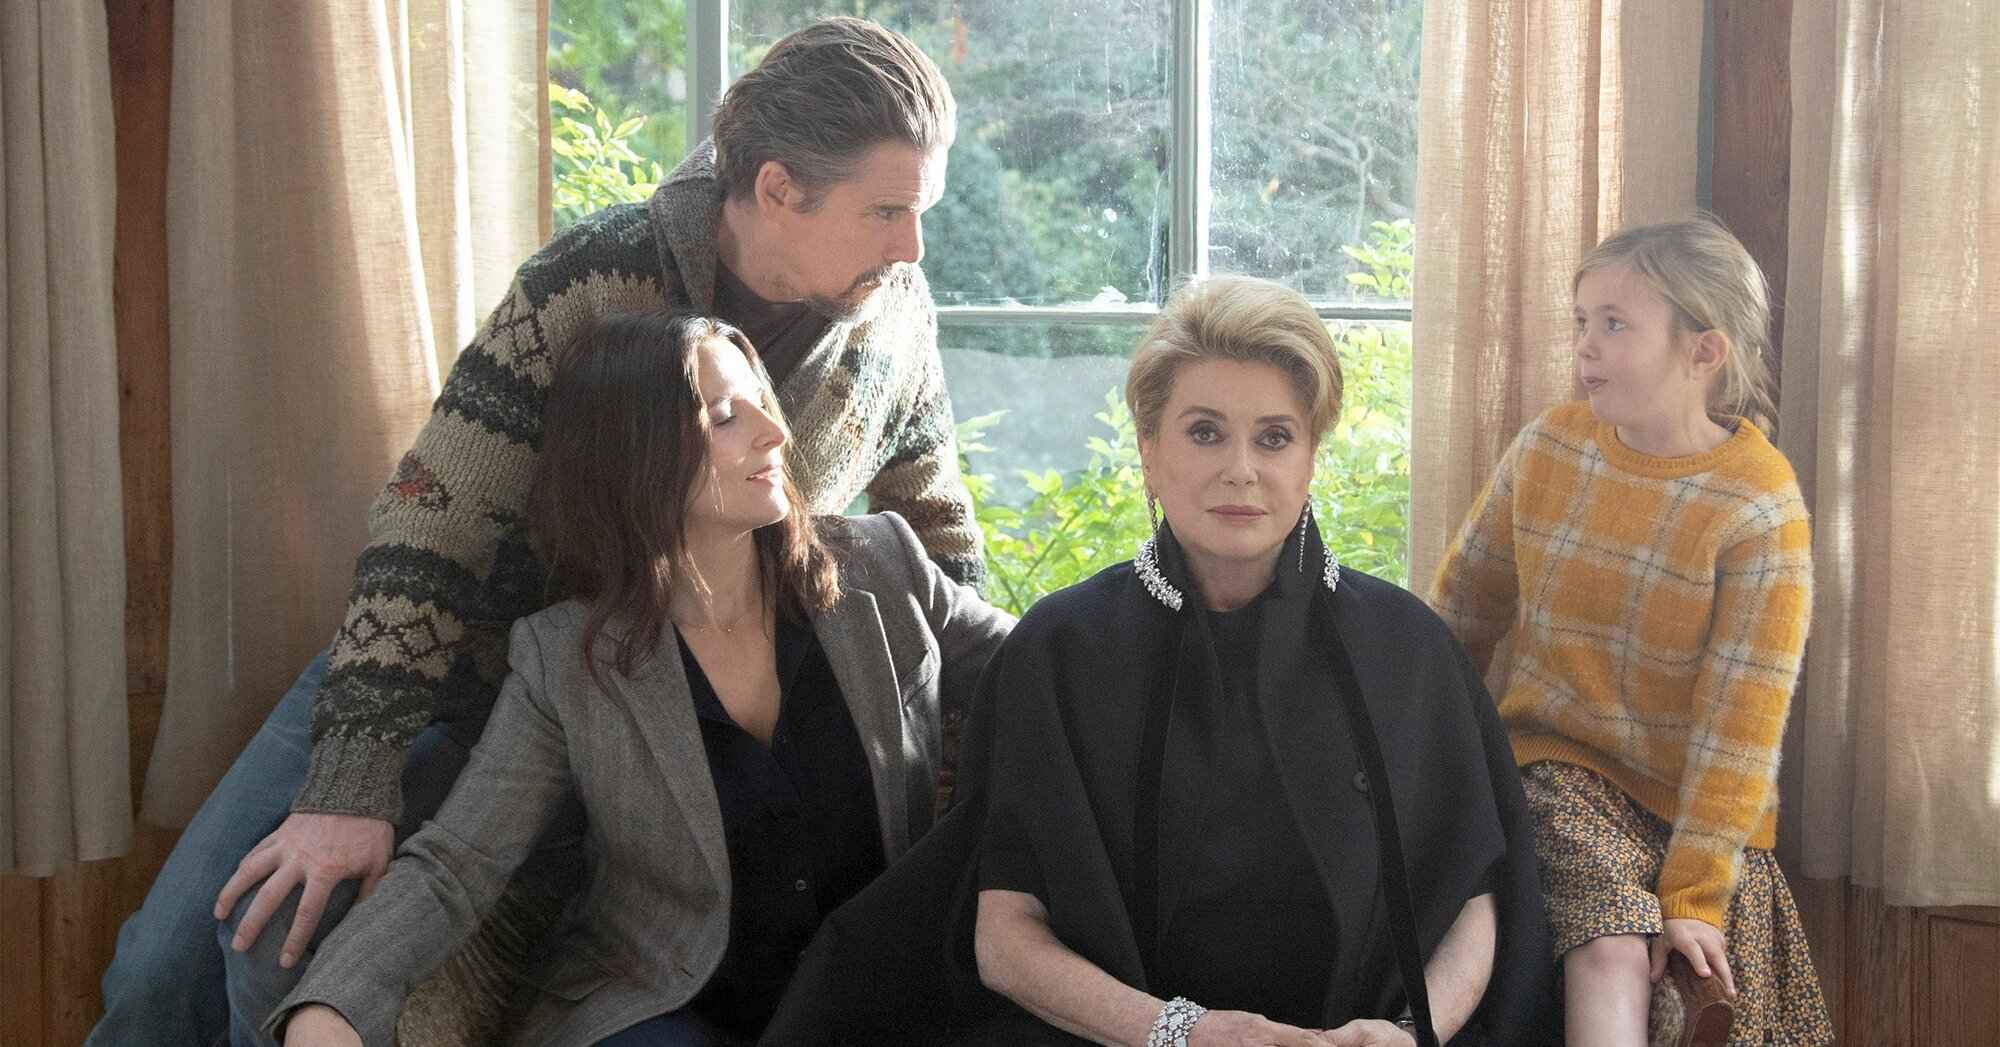 Catherine Deneuve is as magnifique as ever in 'The Truth'